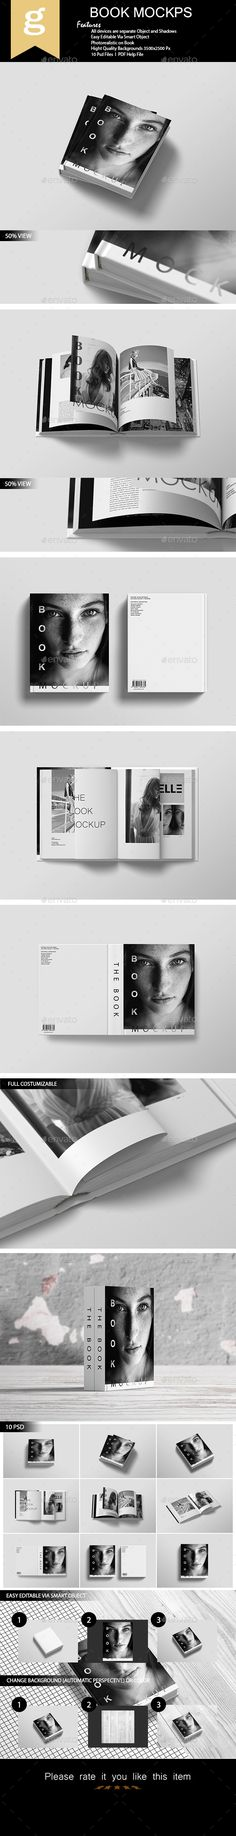 Book Mockup This item consist of 10 different styles of Book mock-ups to showcase your design in realistic appearances. These mock